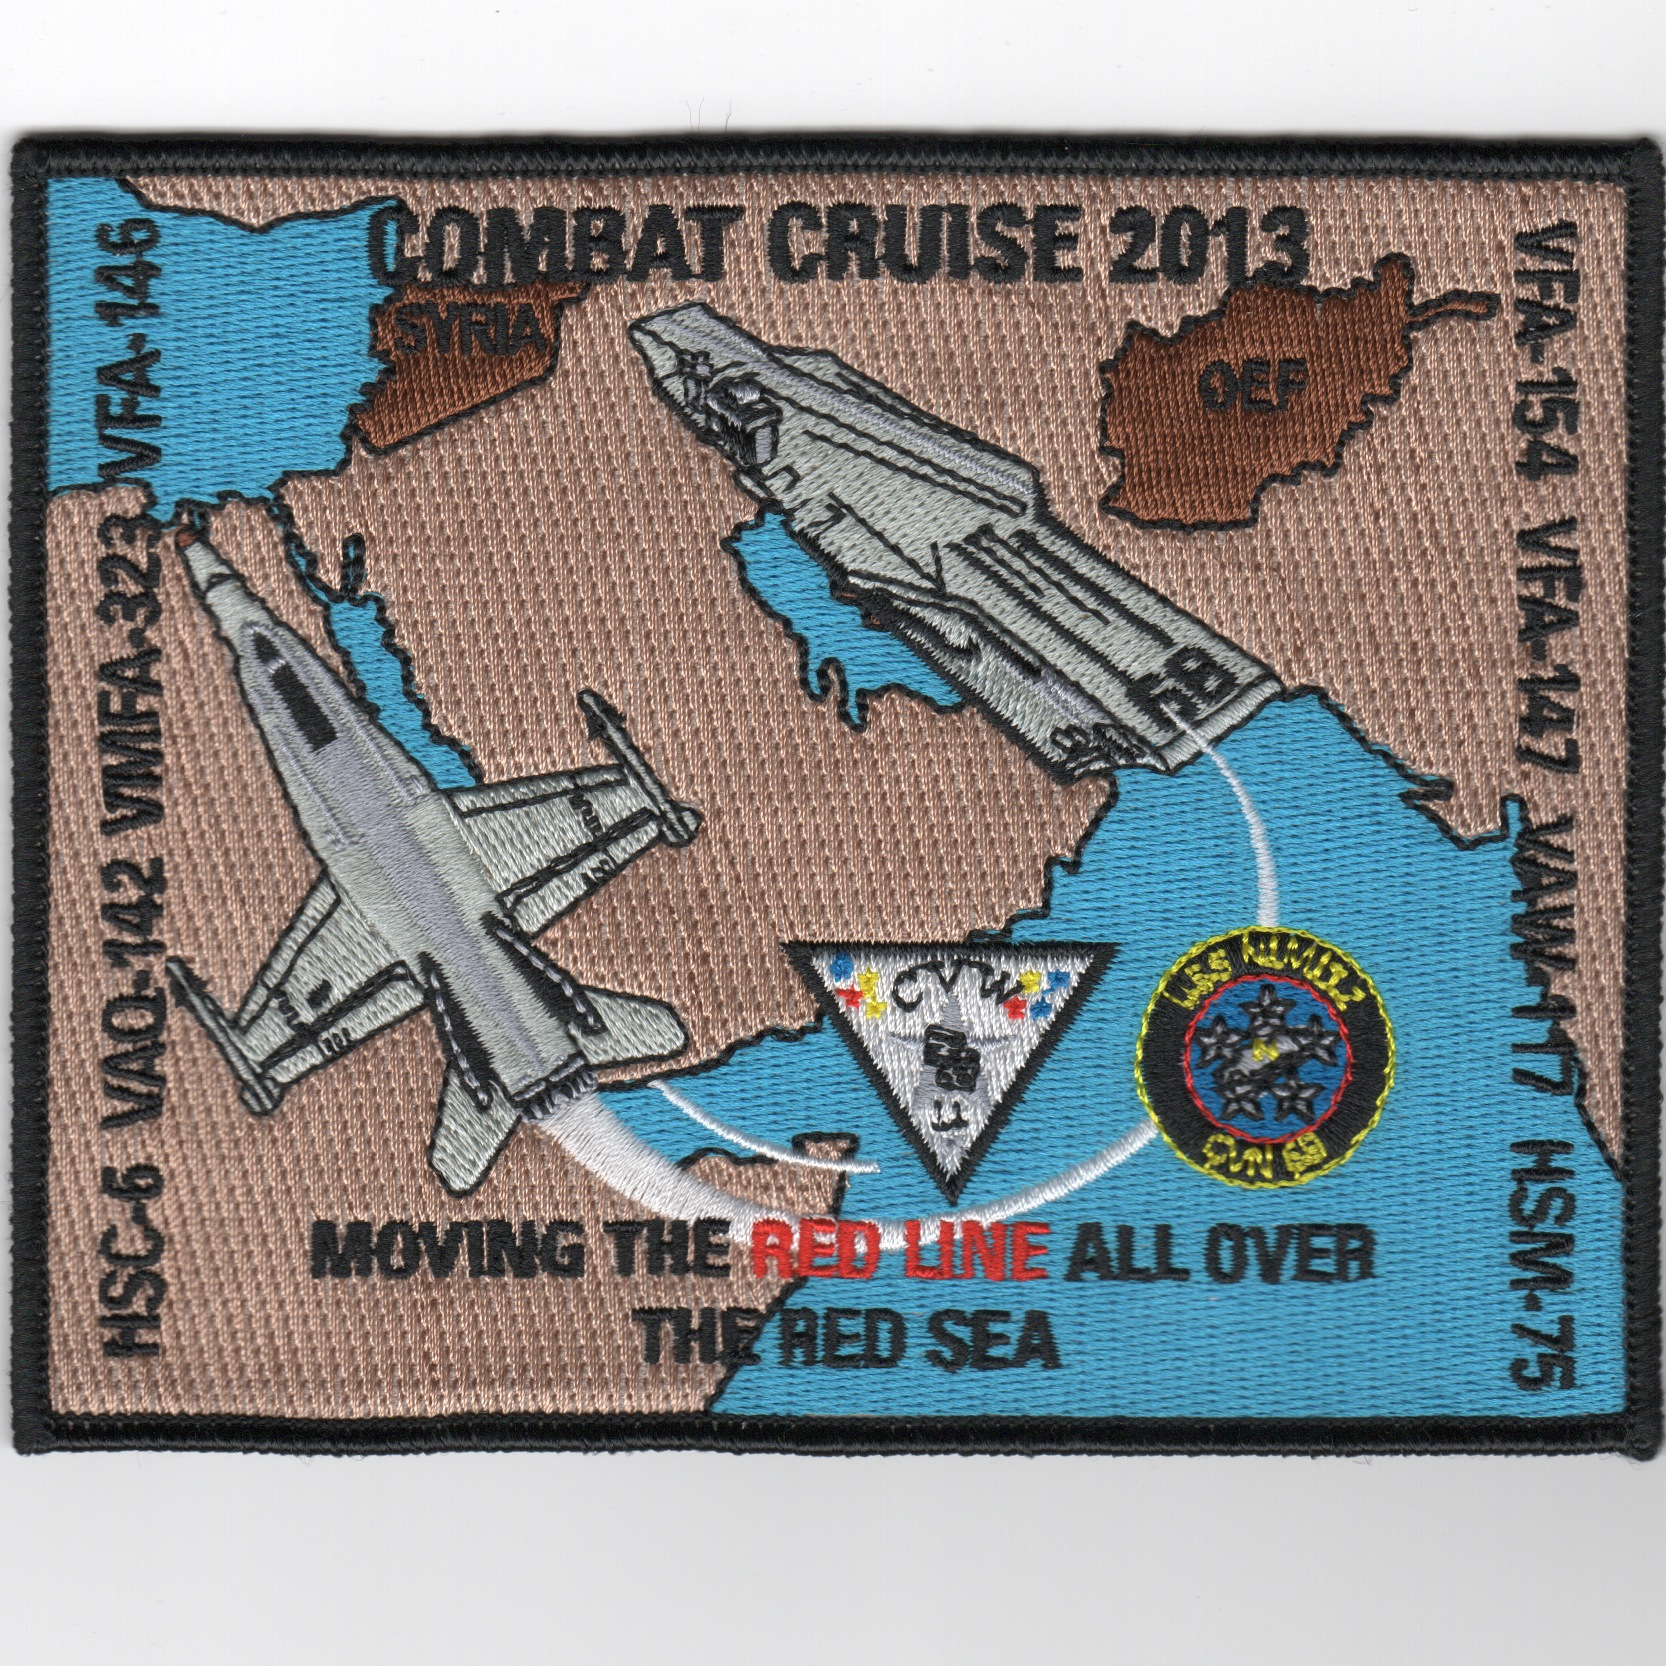 VFA-146/CVN-68/CVW-11 2013 Combat Cruise Patch (Square)